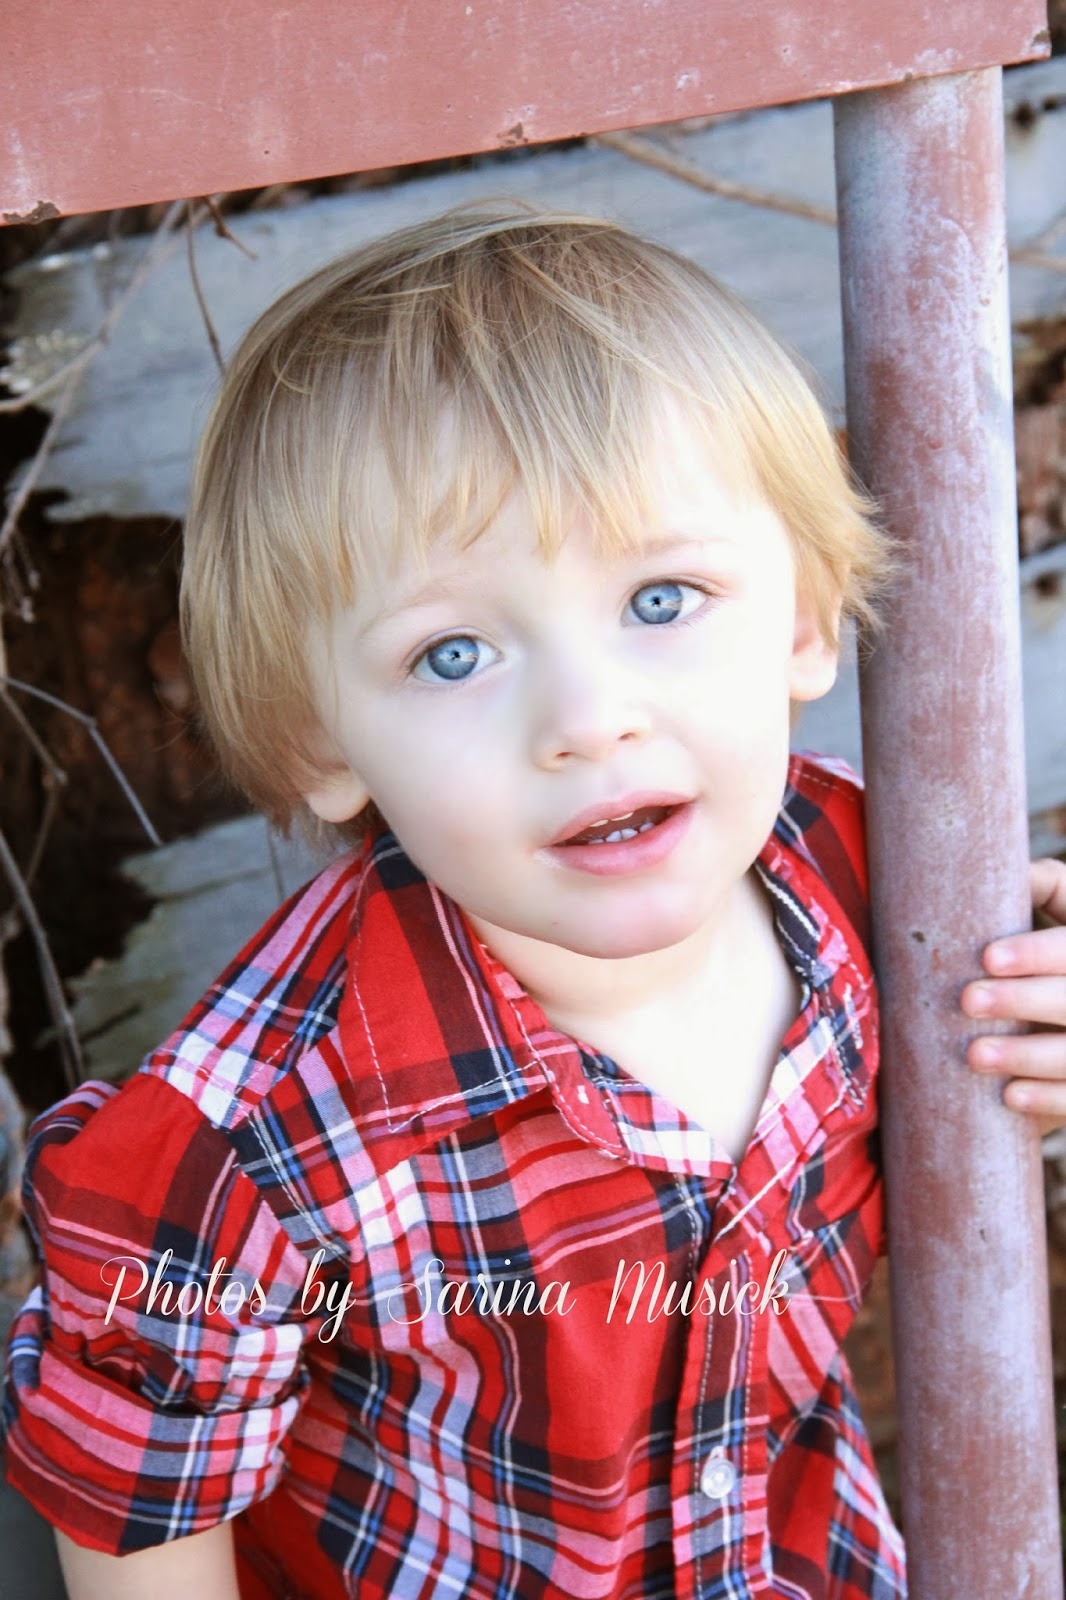 This Is My Sweet Baby Boy Mr. Axel Lee Iu0027m So Proud He Did So Good With His  Pictures Today :):) I Canu0027t Believe He Will Be 2 In May :(